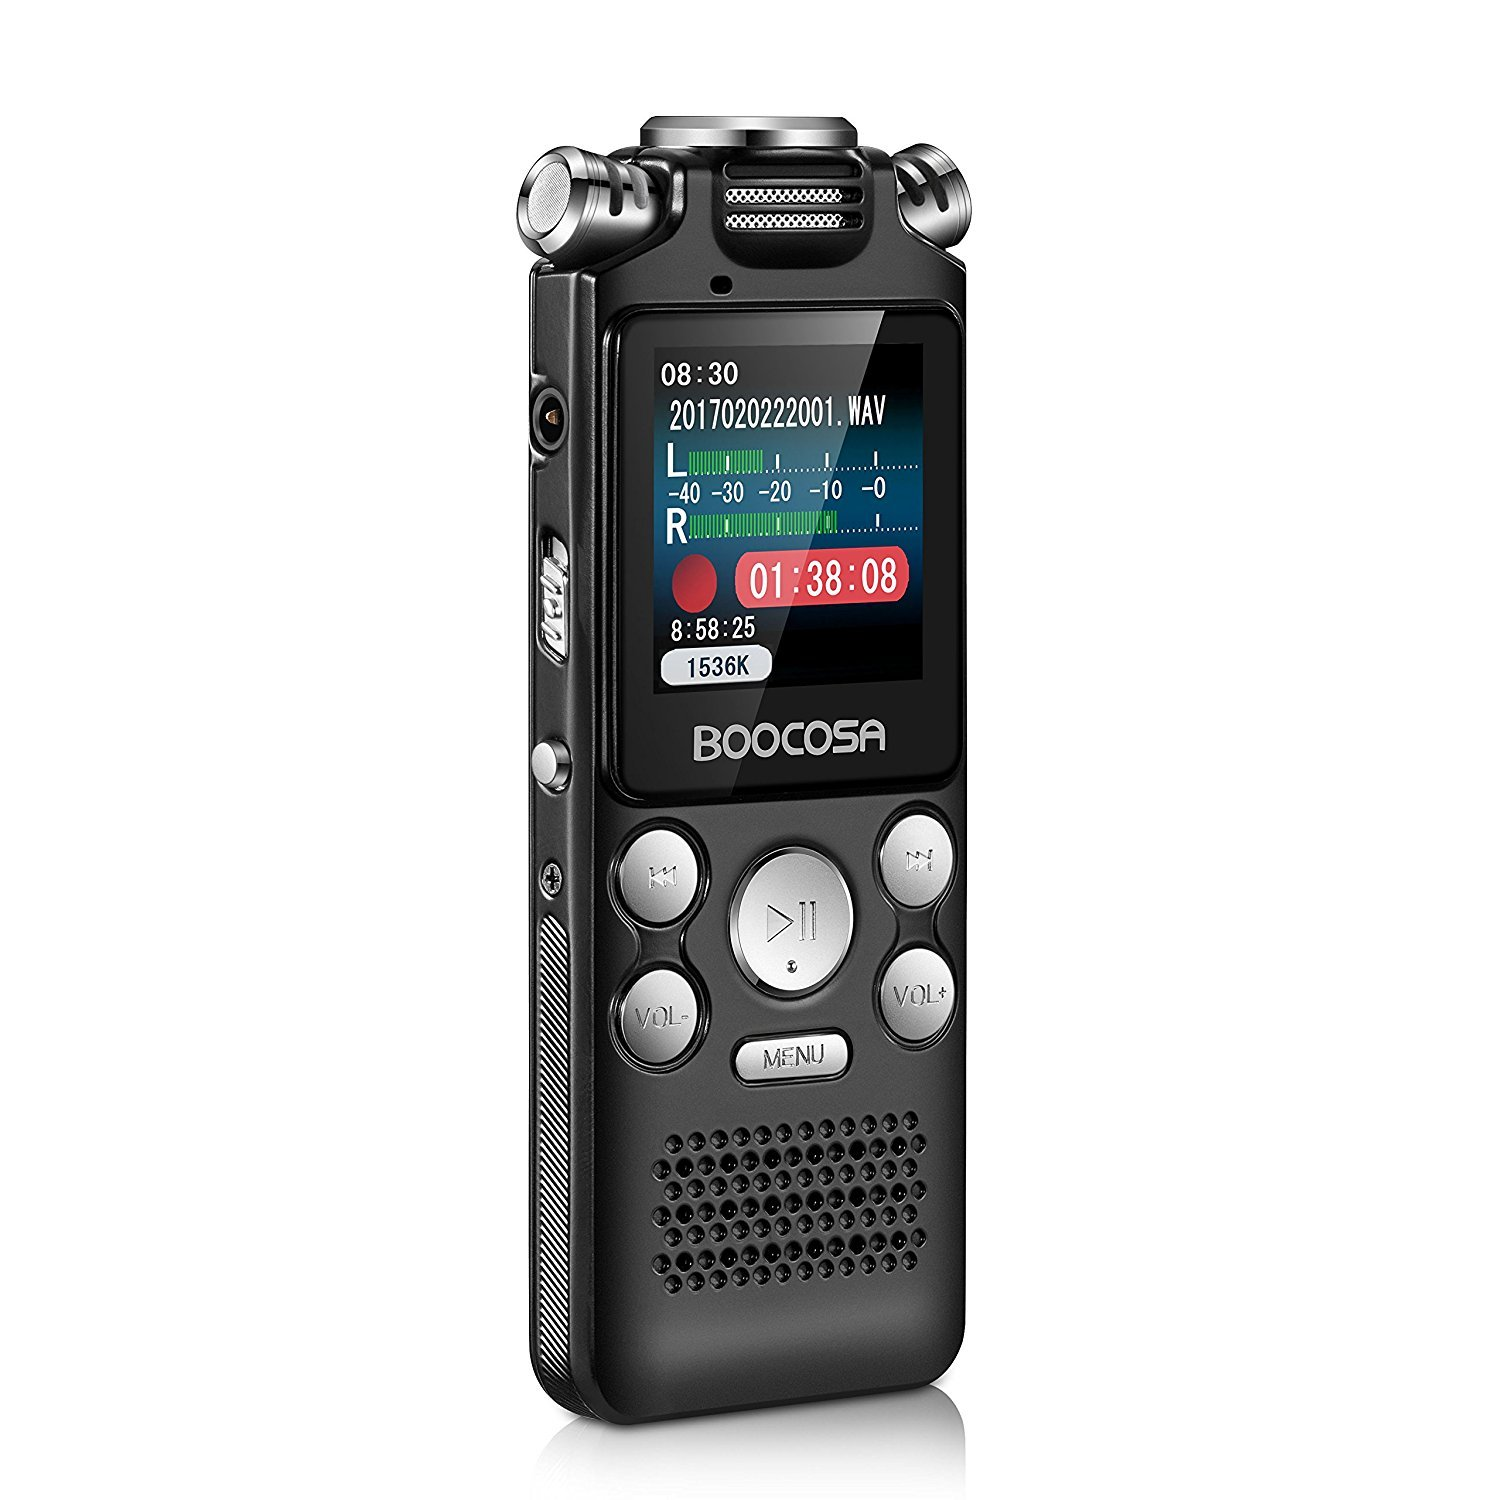 Voice Recorder - 8GB Audio Sound Recorder – Portable Rechargeable Dictaphone Recorder with Playback Noise Cancellation, A-B Repeat, Sleep Timer, MP3 Player